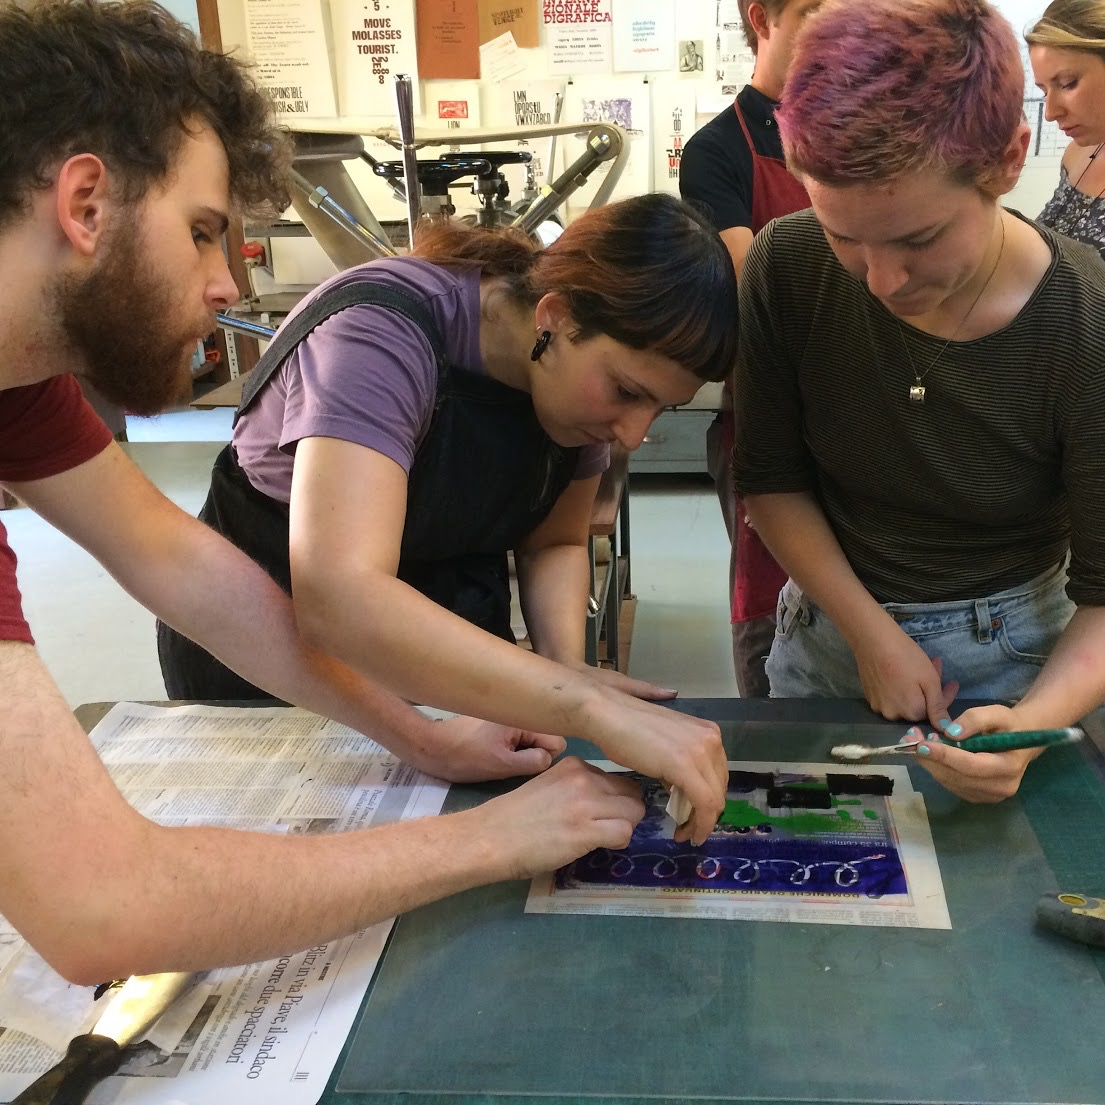 Students Adam Gowan and Brianne McKain at work in the print shop with assistant Roberta.